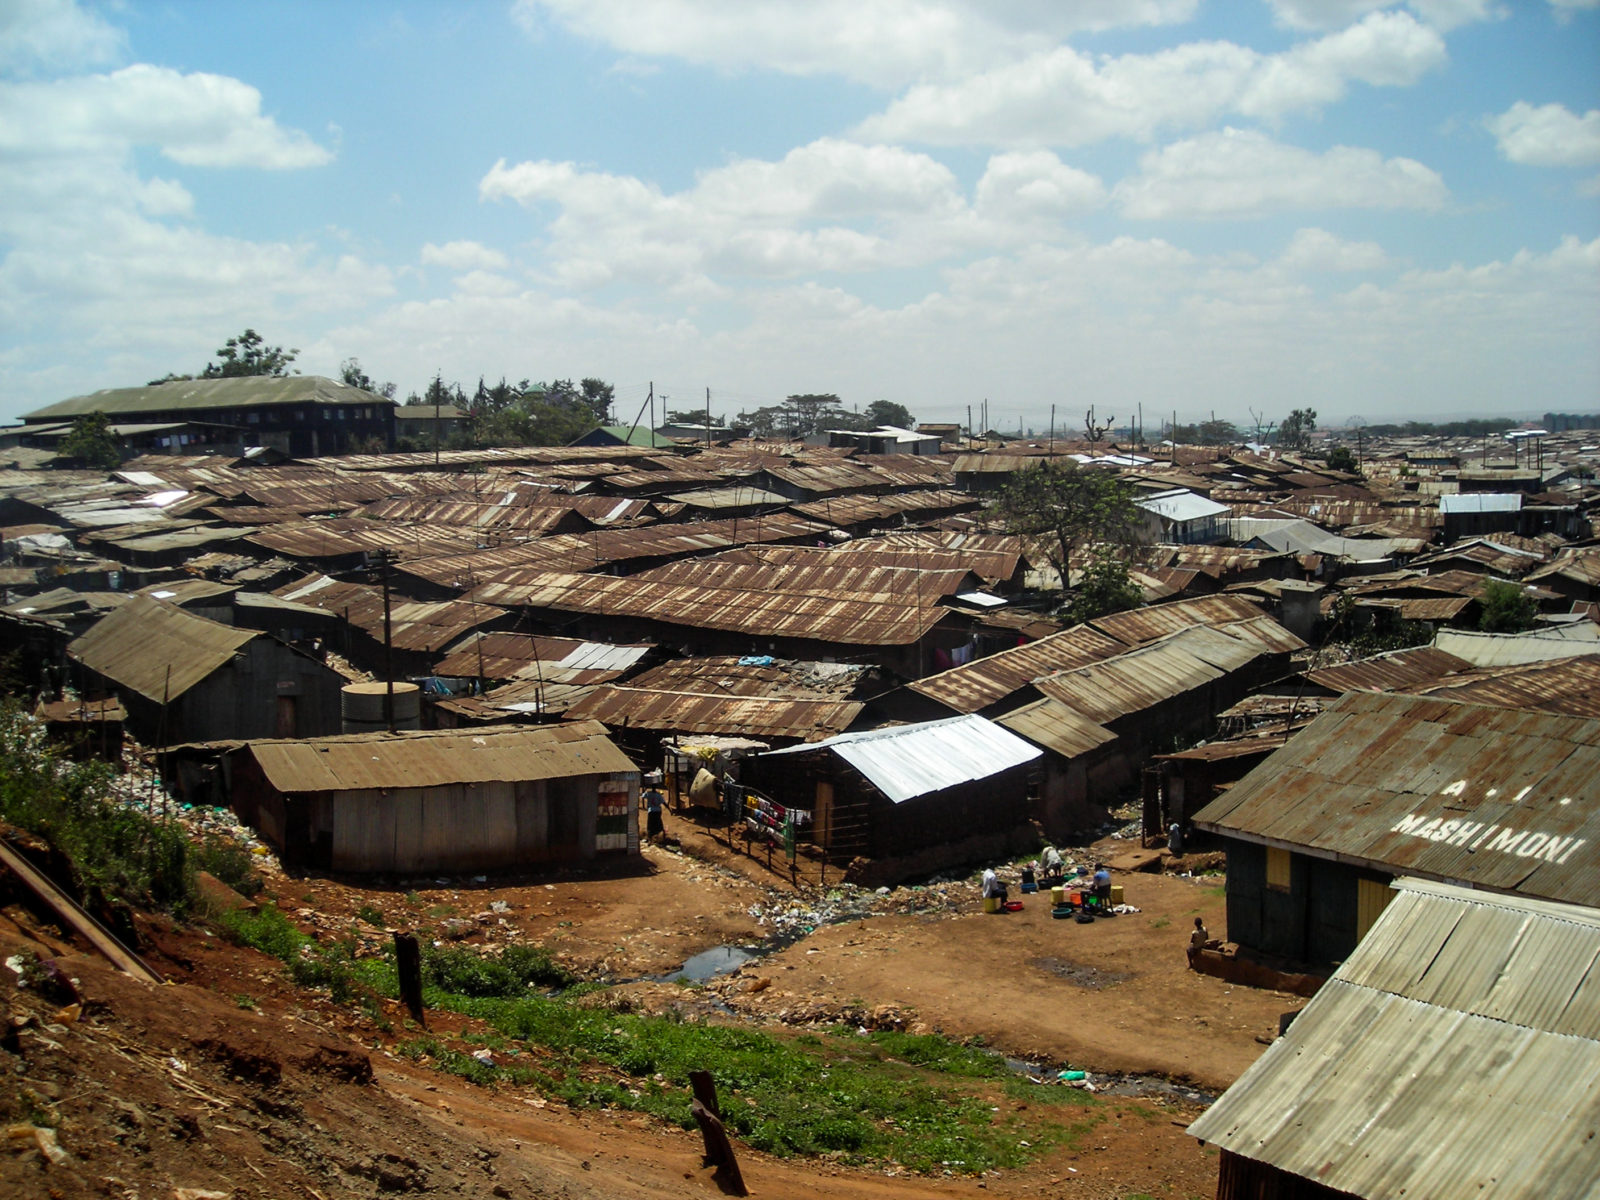 Willems_2007_Kibera2